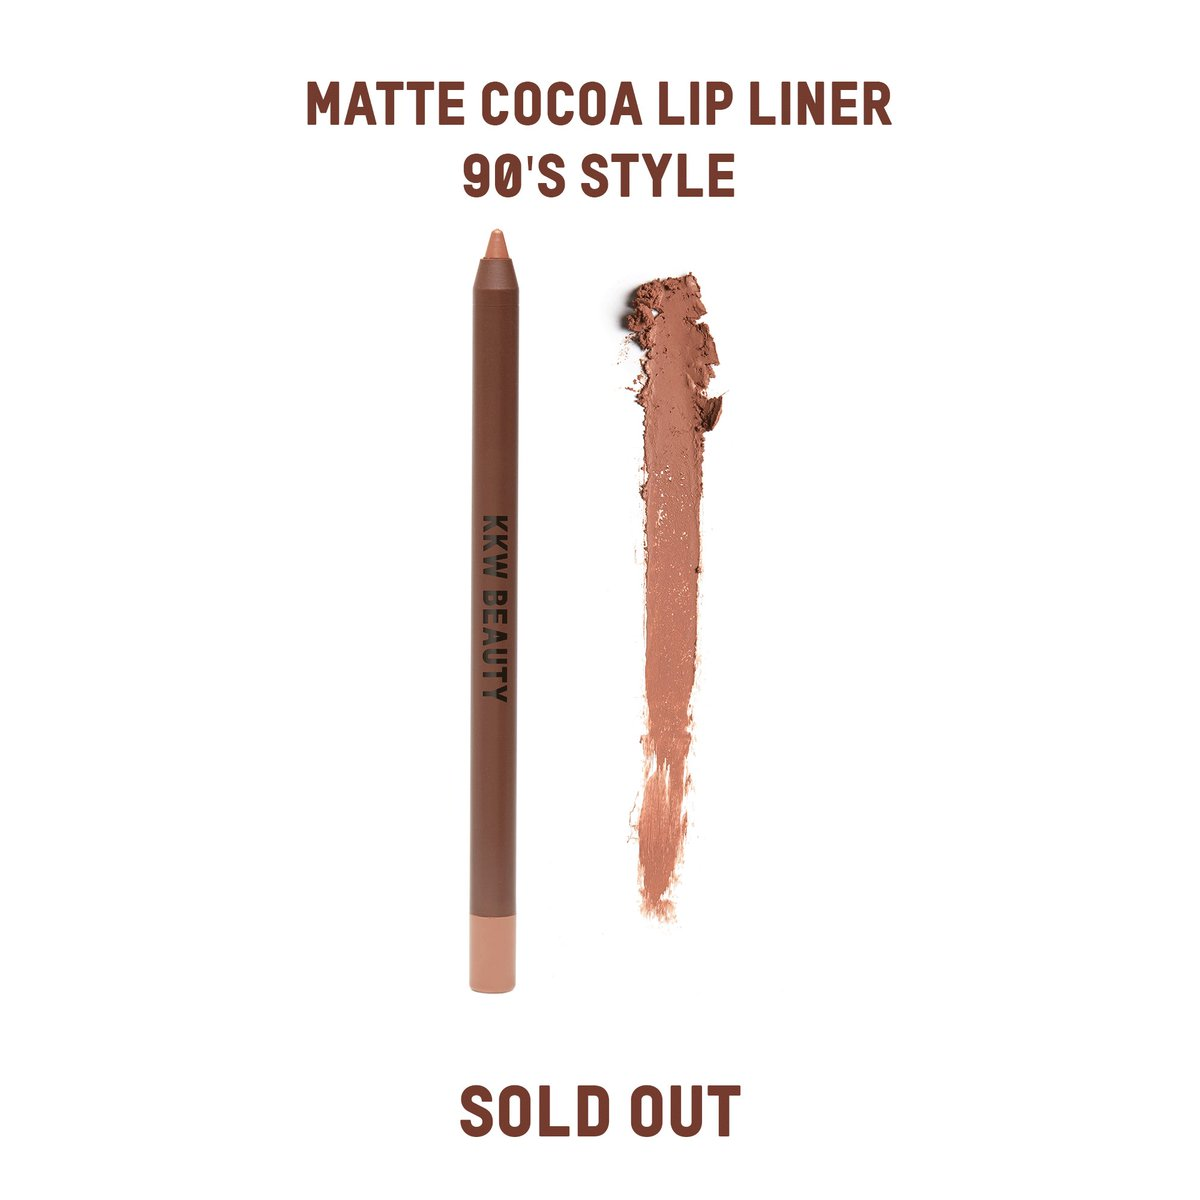 My @kkwbeauty  Matte Cocoa Lip Liner in 90's Style is sold out!! We still have Lipsticks, Lip Liners, Eyeliners and Eyeshadow Palettes that you can shop individually at  http://kkwbeauty.com   #kkwbeauty